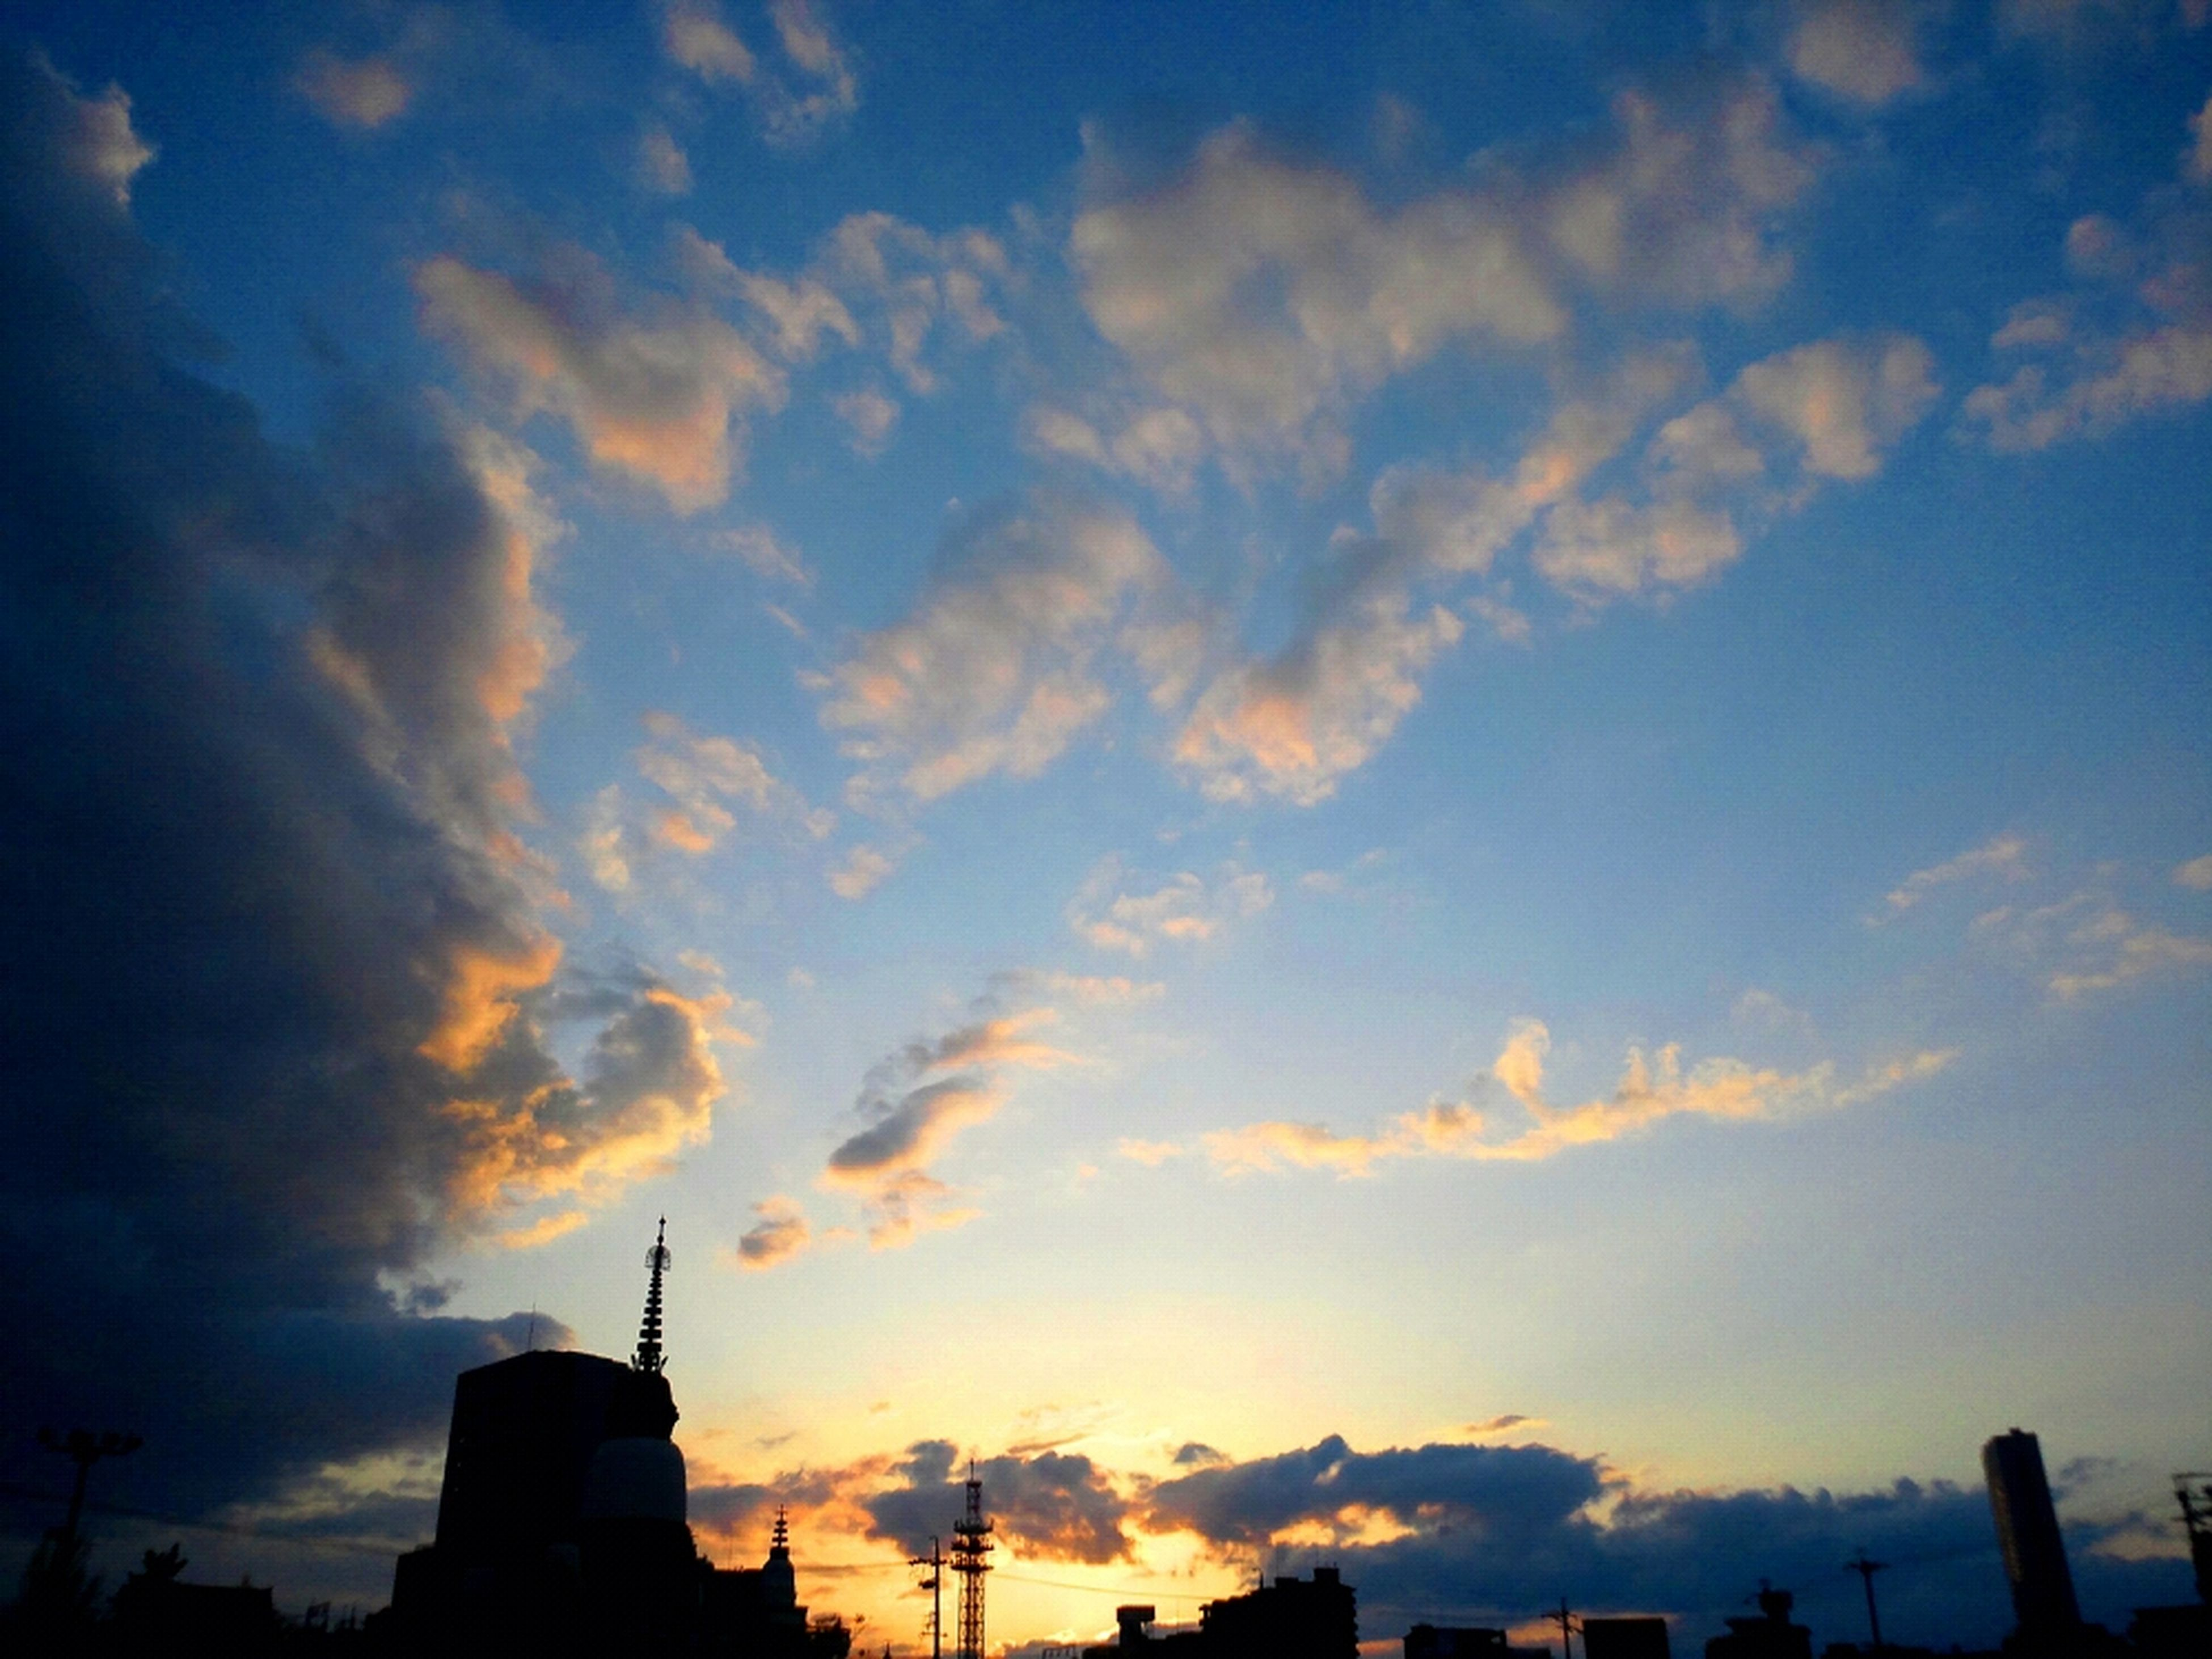 building exterior, architecture, built structure, sunset, sky, silhouette, low angle view, cloud - sky, city, orange color, cloud, building, outdoors, cloudy, no people, dusk, tower, tall - high, nature, dramatic sky